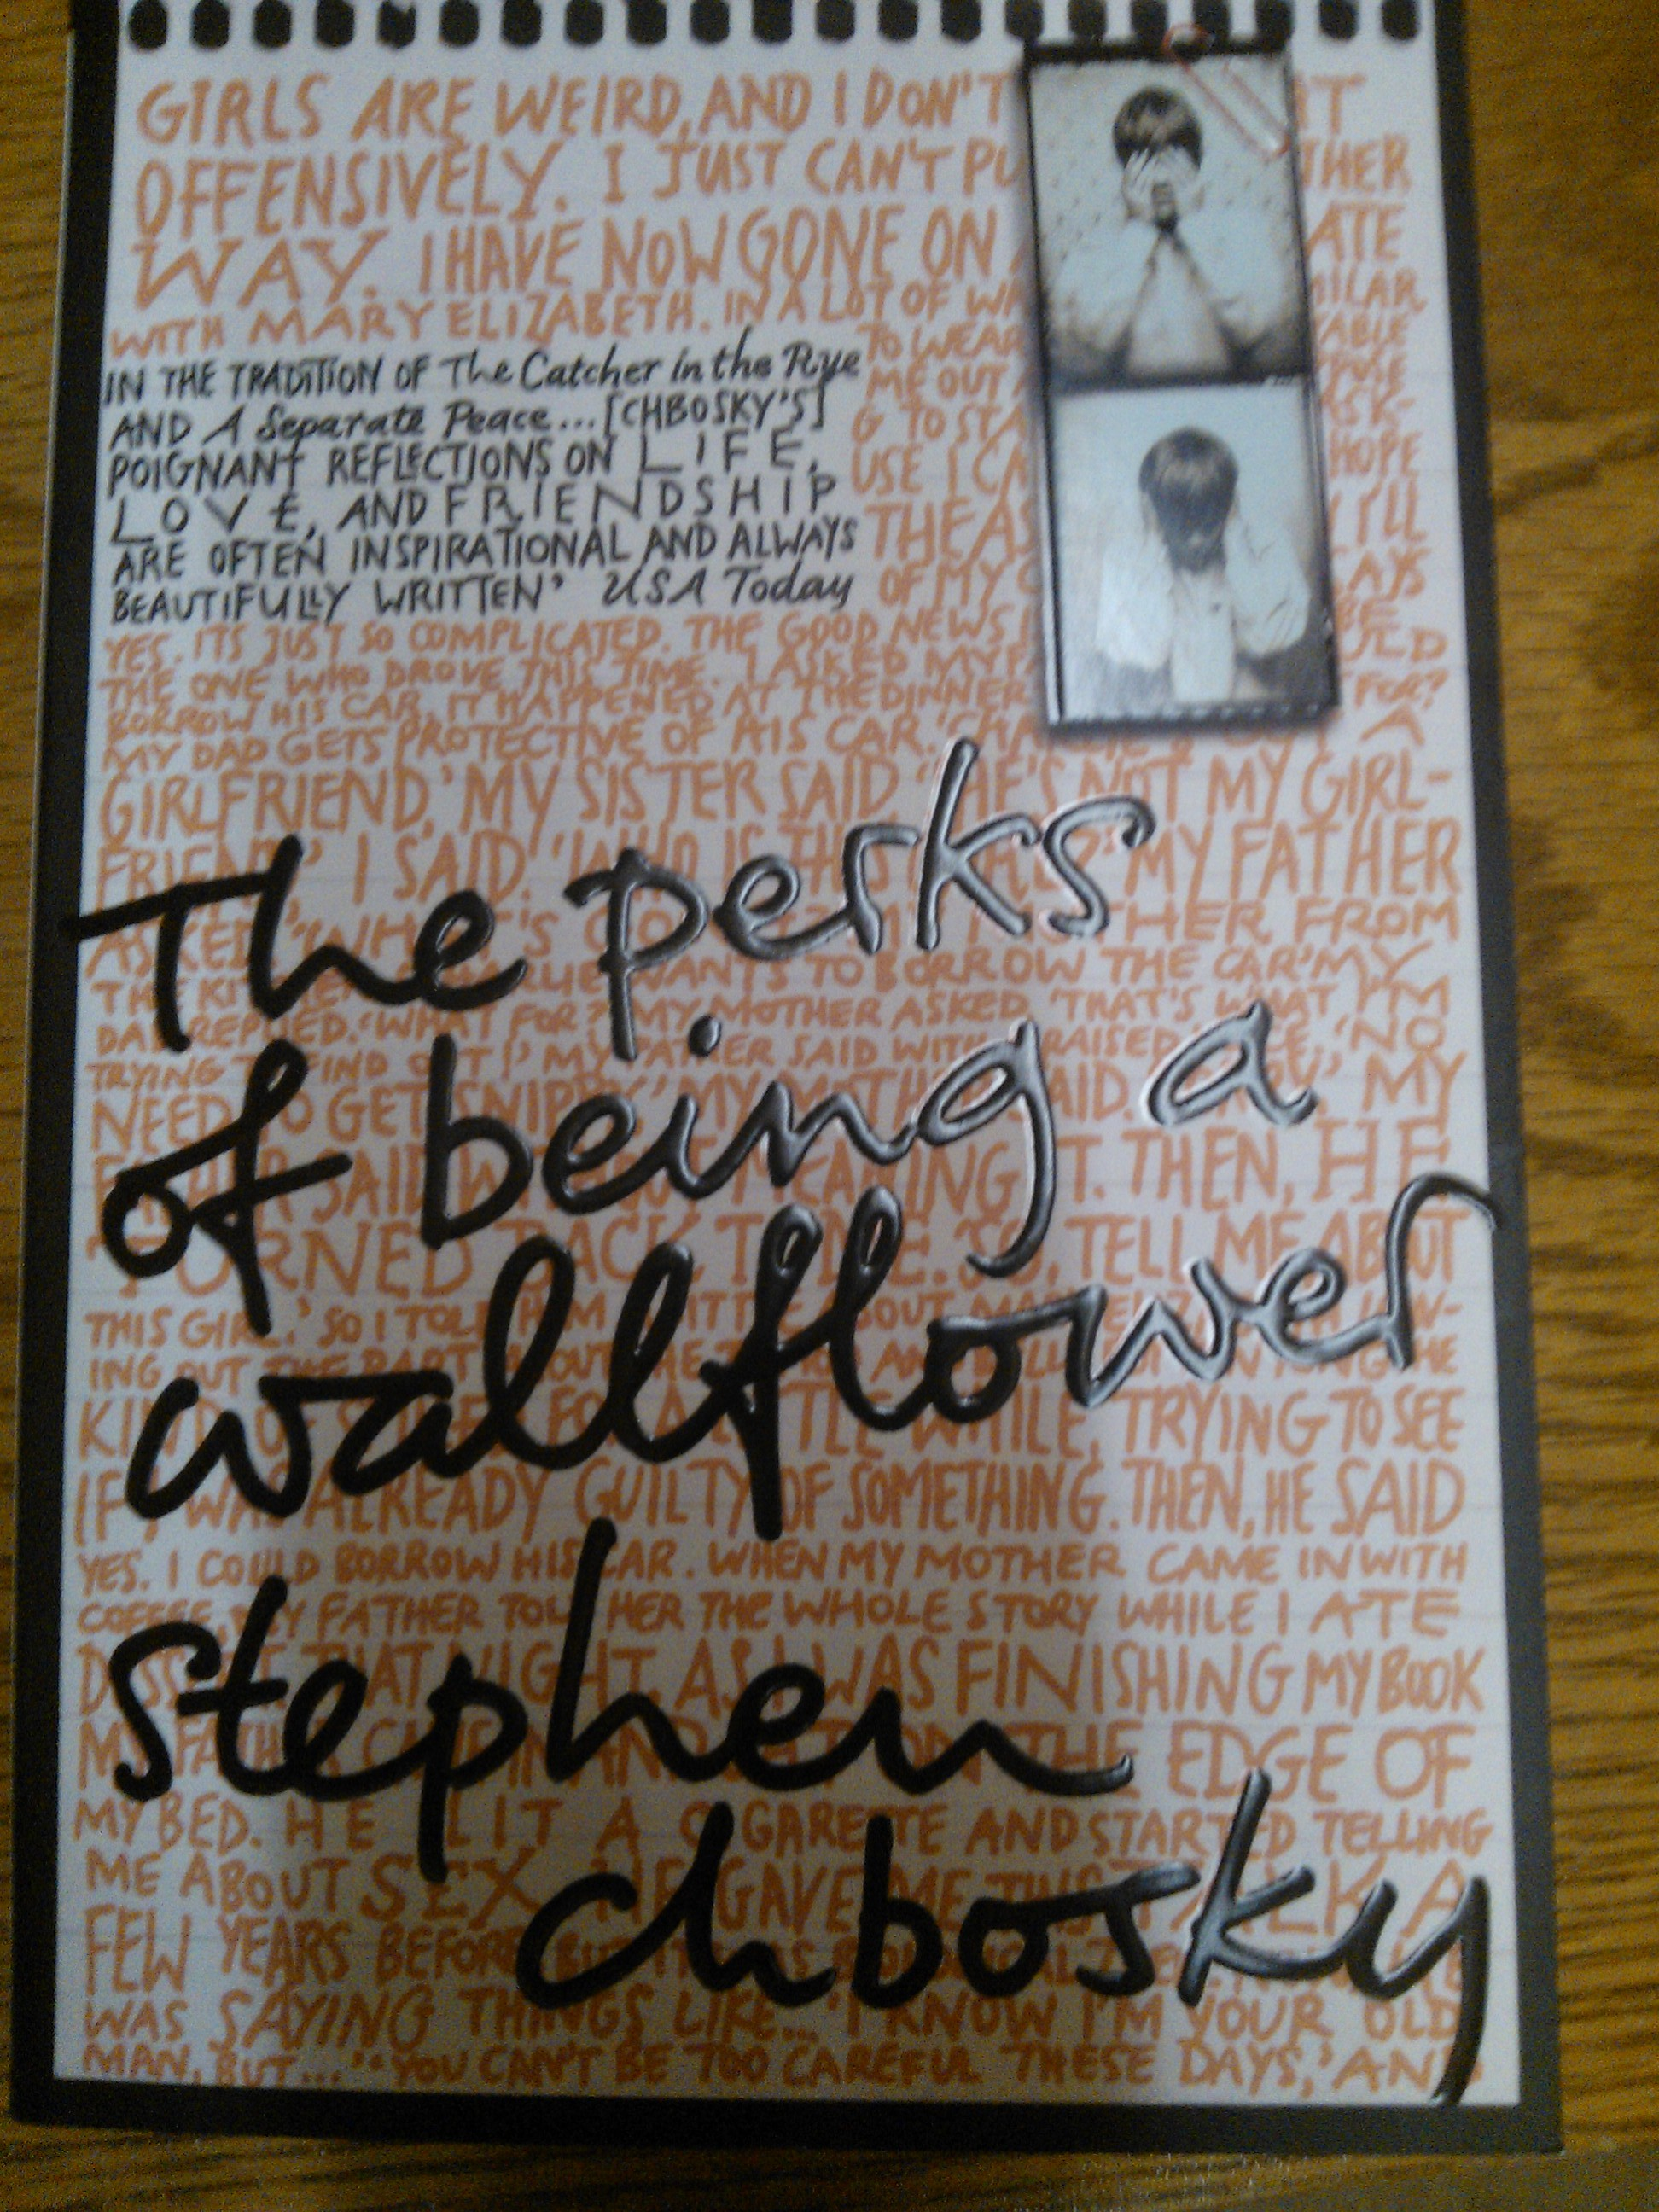 the perks of being a wallflower loneliness The perks of being a wallflower is the coming-of-age story of a lonely, shy, volatile 15-year old called charlie who is both happy and sad and trying to figure out how that could be this is an epistolary novel where the chapters are a series.